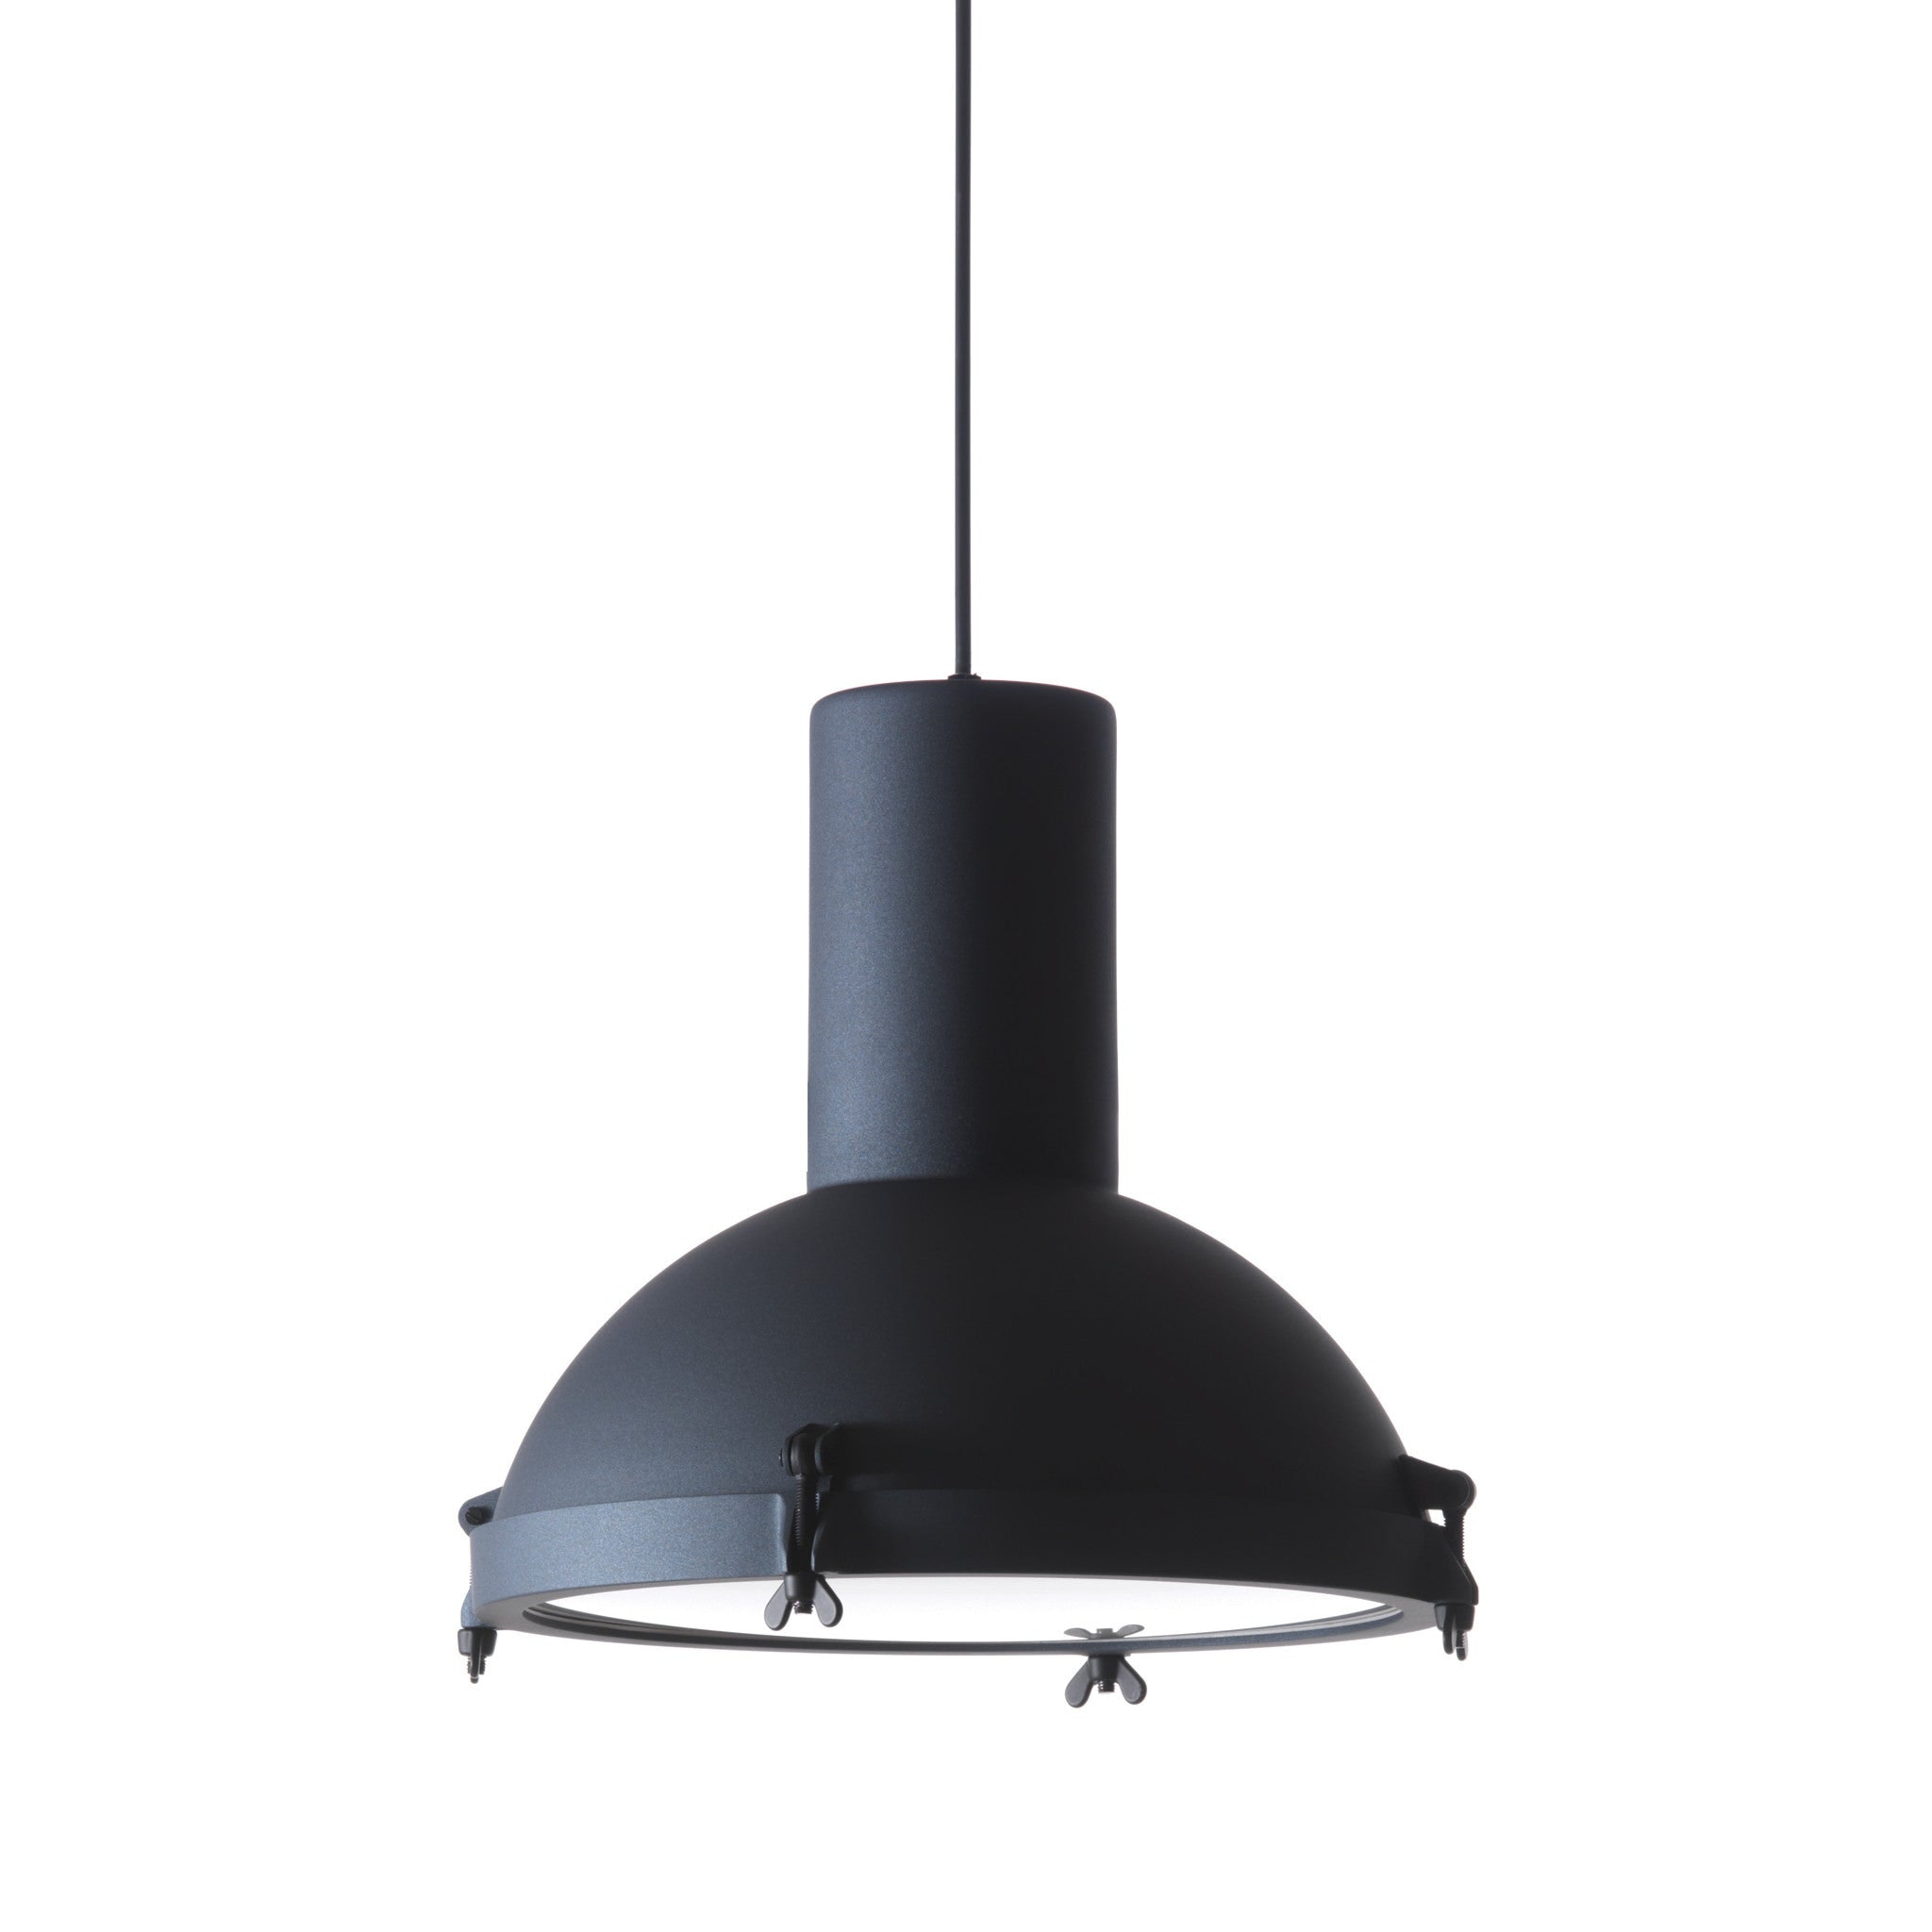 Projecteur 365 Pendant Light by Le Corbusier